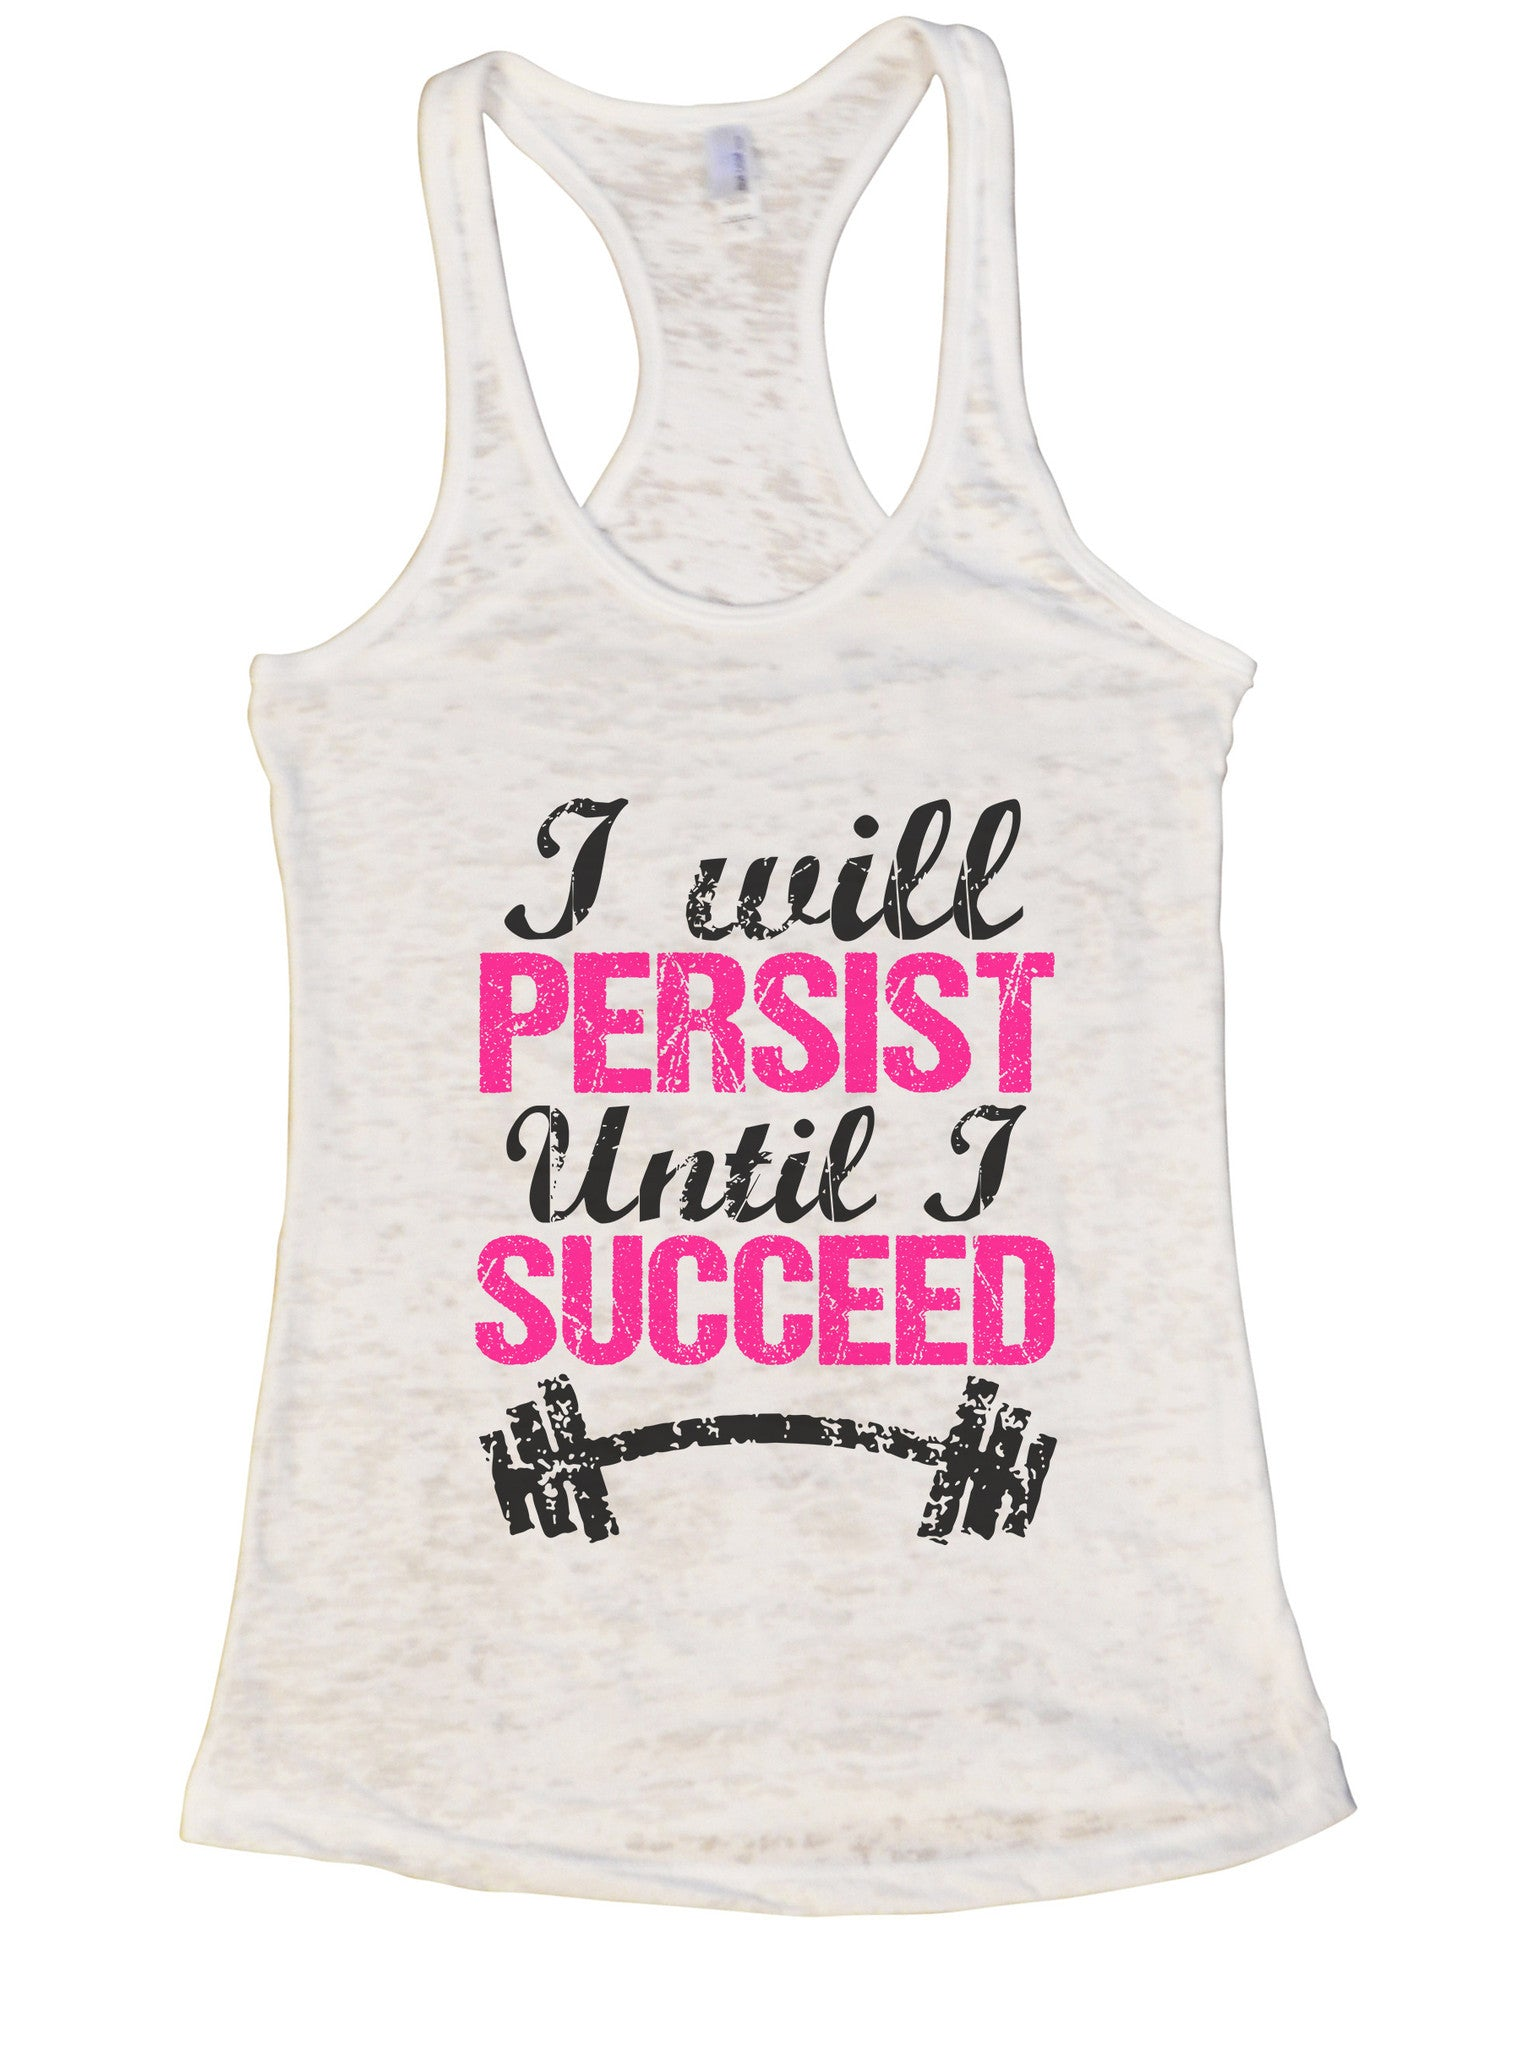 Womens Burnout Tank Top I Will Persist Until I Succeed Motivational Tank BurnoutTankTops.com - Funny Shirts Tank Tops Burnouts and Triblends  - 6